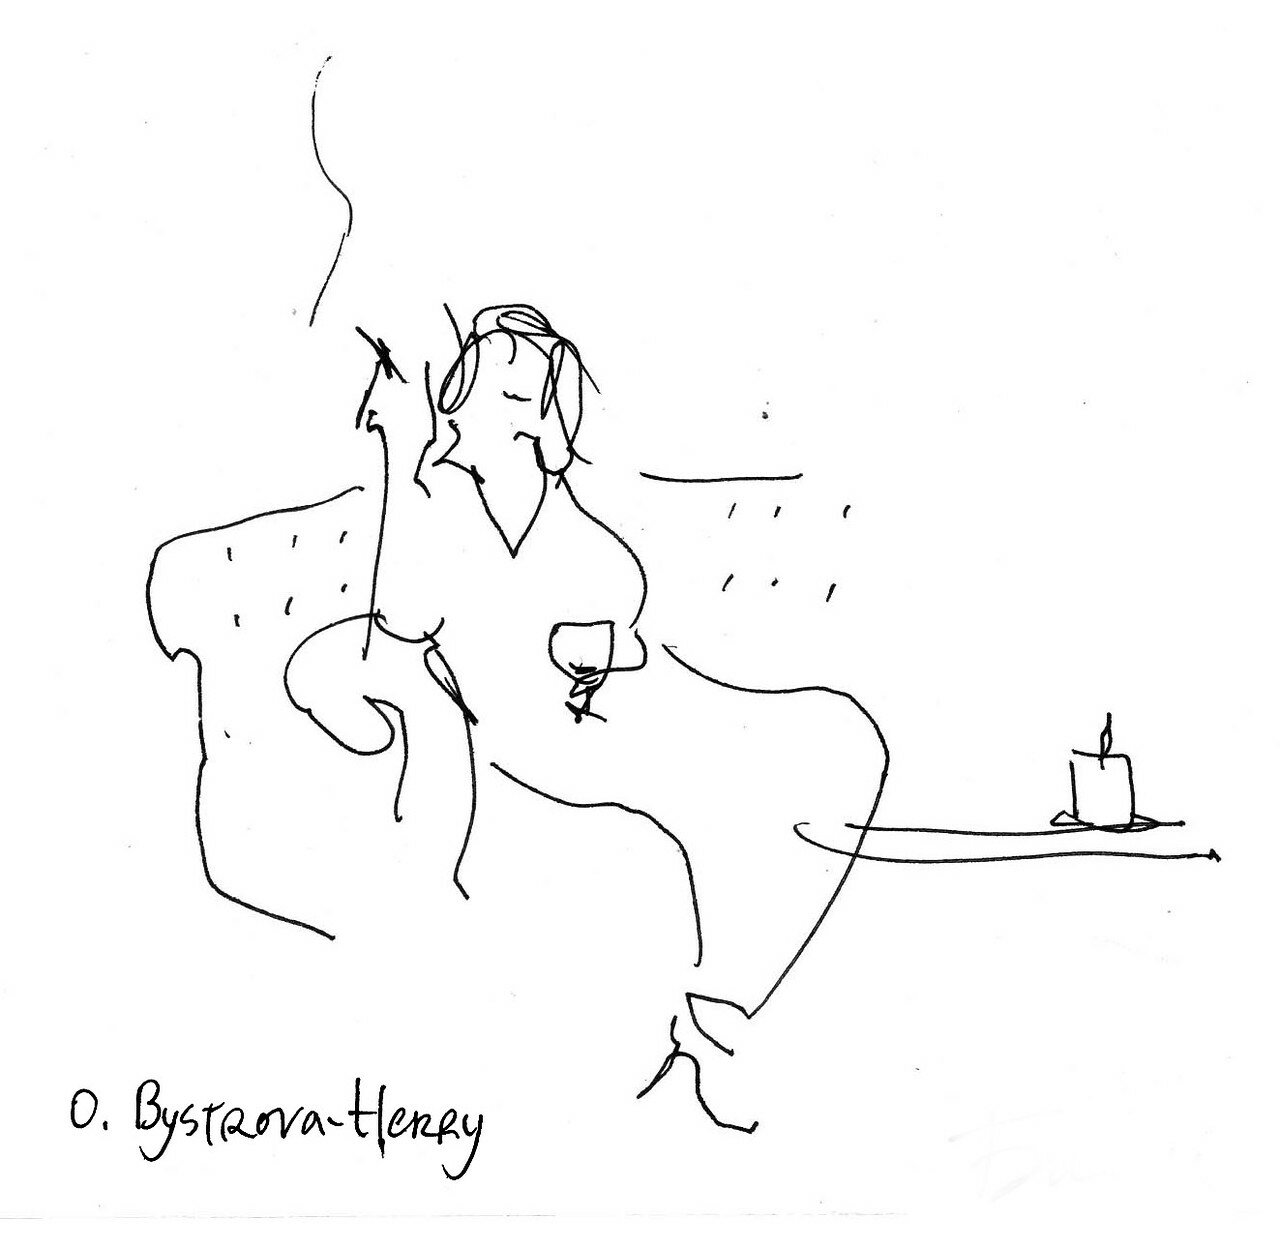 003 cafe draws. Avec une cigarette